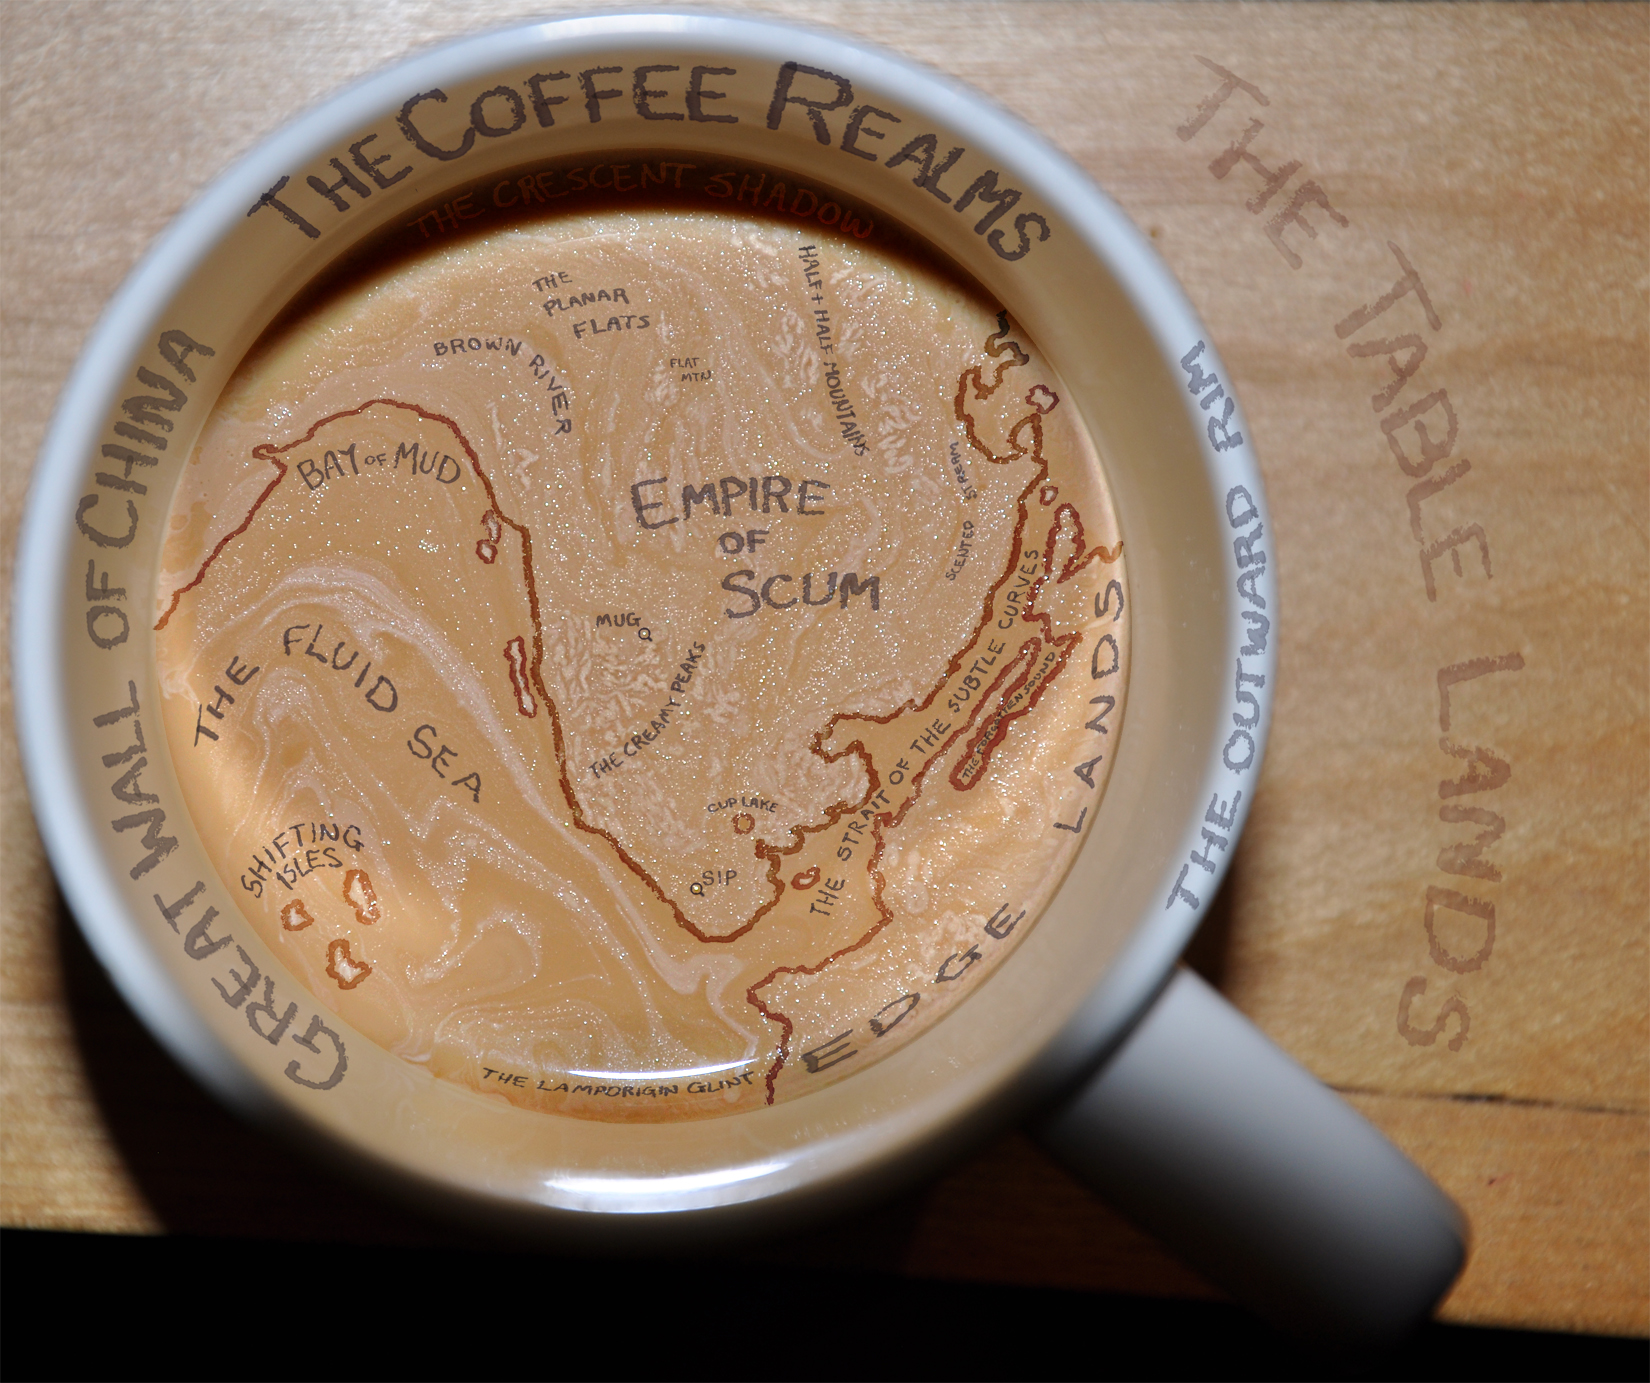 The Coffee Realms humorous map - all rights reserved.